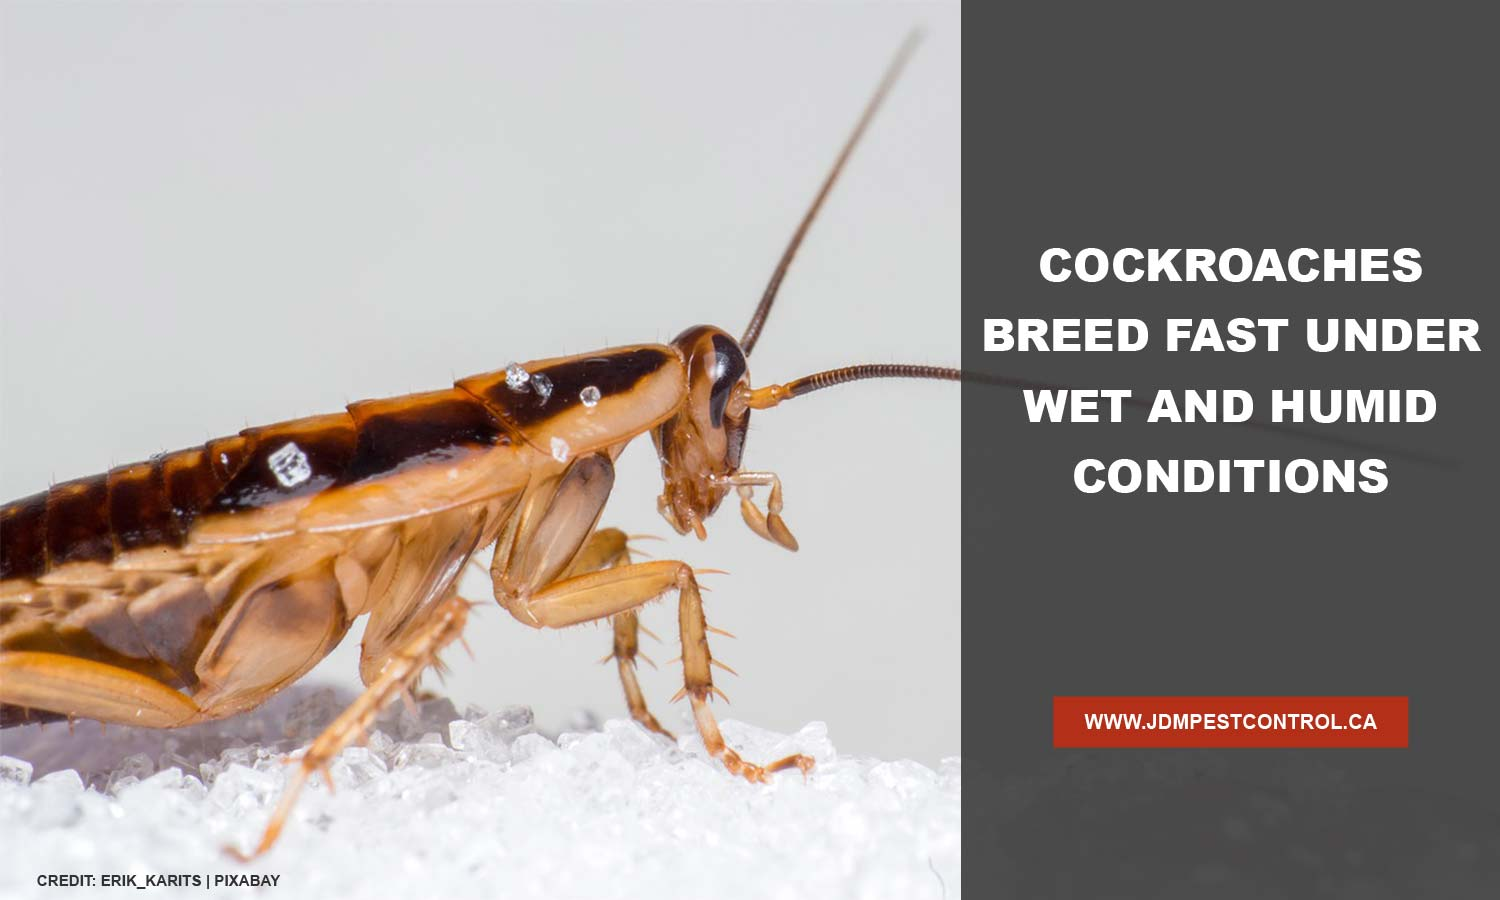 Cockroaches breed fast under wet and humid conditions